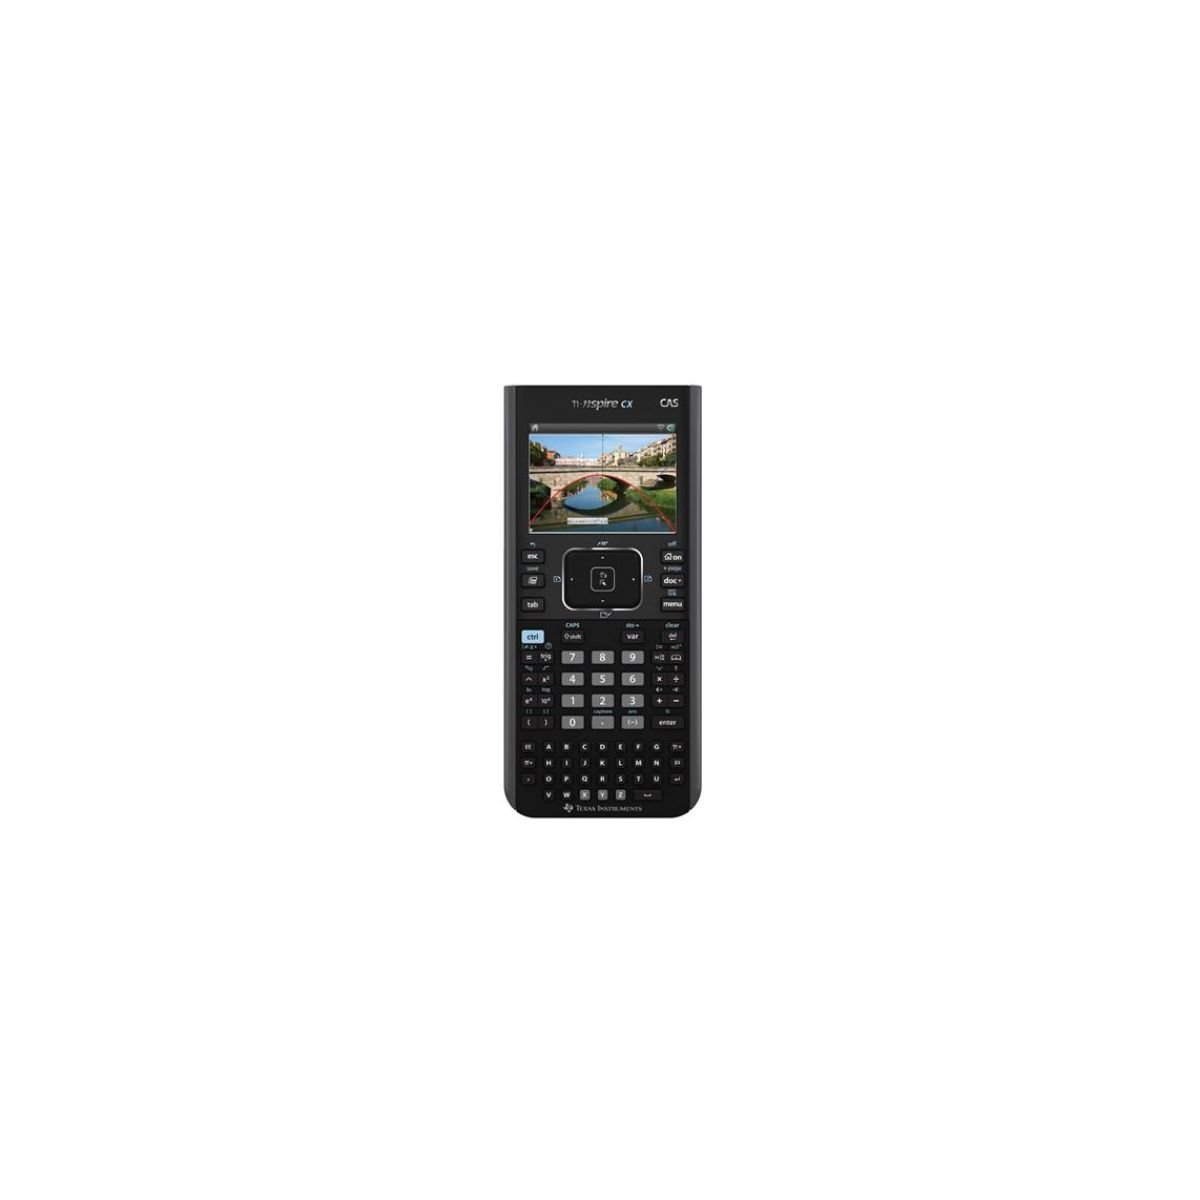 Calculatrice scientifique TEXAS INSTRUMENTS TI-Nspire (photo)